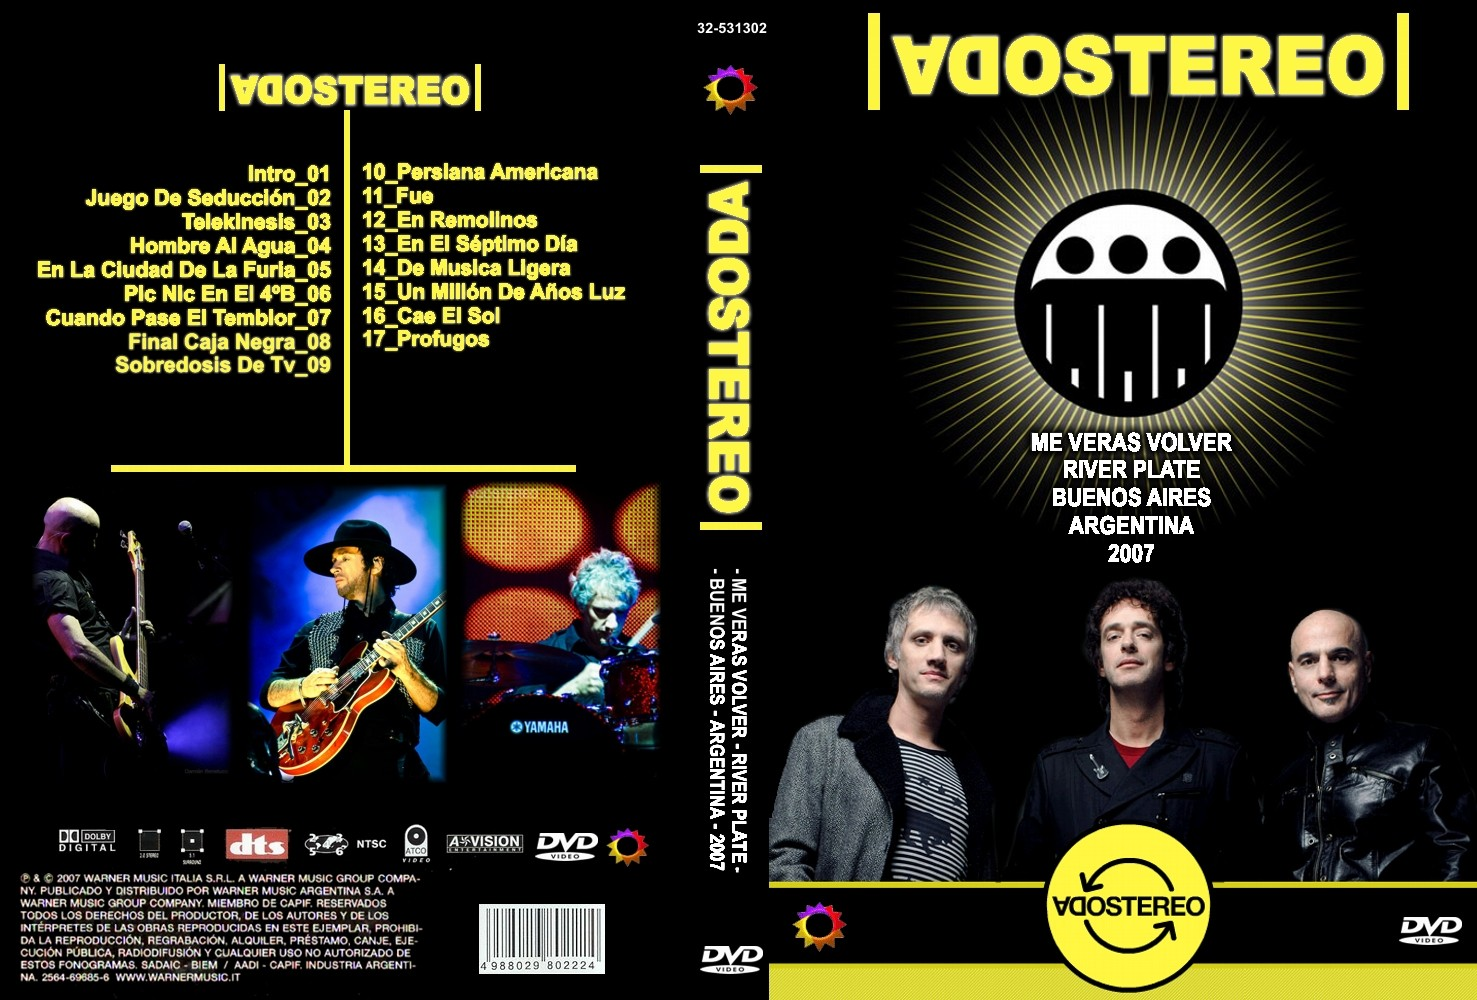 http://2.bp.blogspot.com/-0mFm4tKK-g8/TpNolS3FoxI/AAAAAAAACLY/olRbuvQGSwk/s1600/Soda_Stereo_-_Me_Veras_Volver_River_Plate_Buenos_Aires_Argentina_2007_Spanish_Custom-%255Bcdcovers_cc%255D-front.jpg